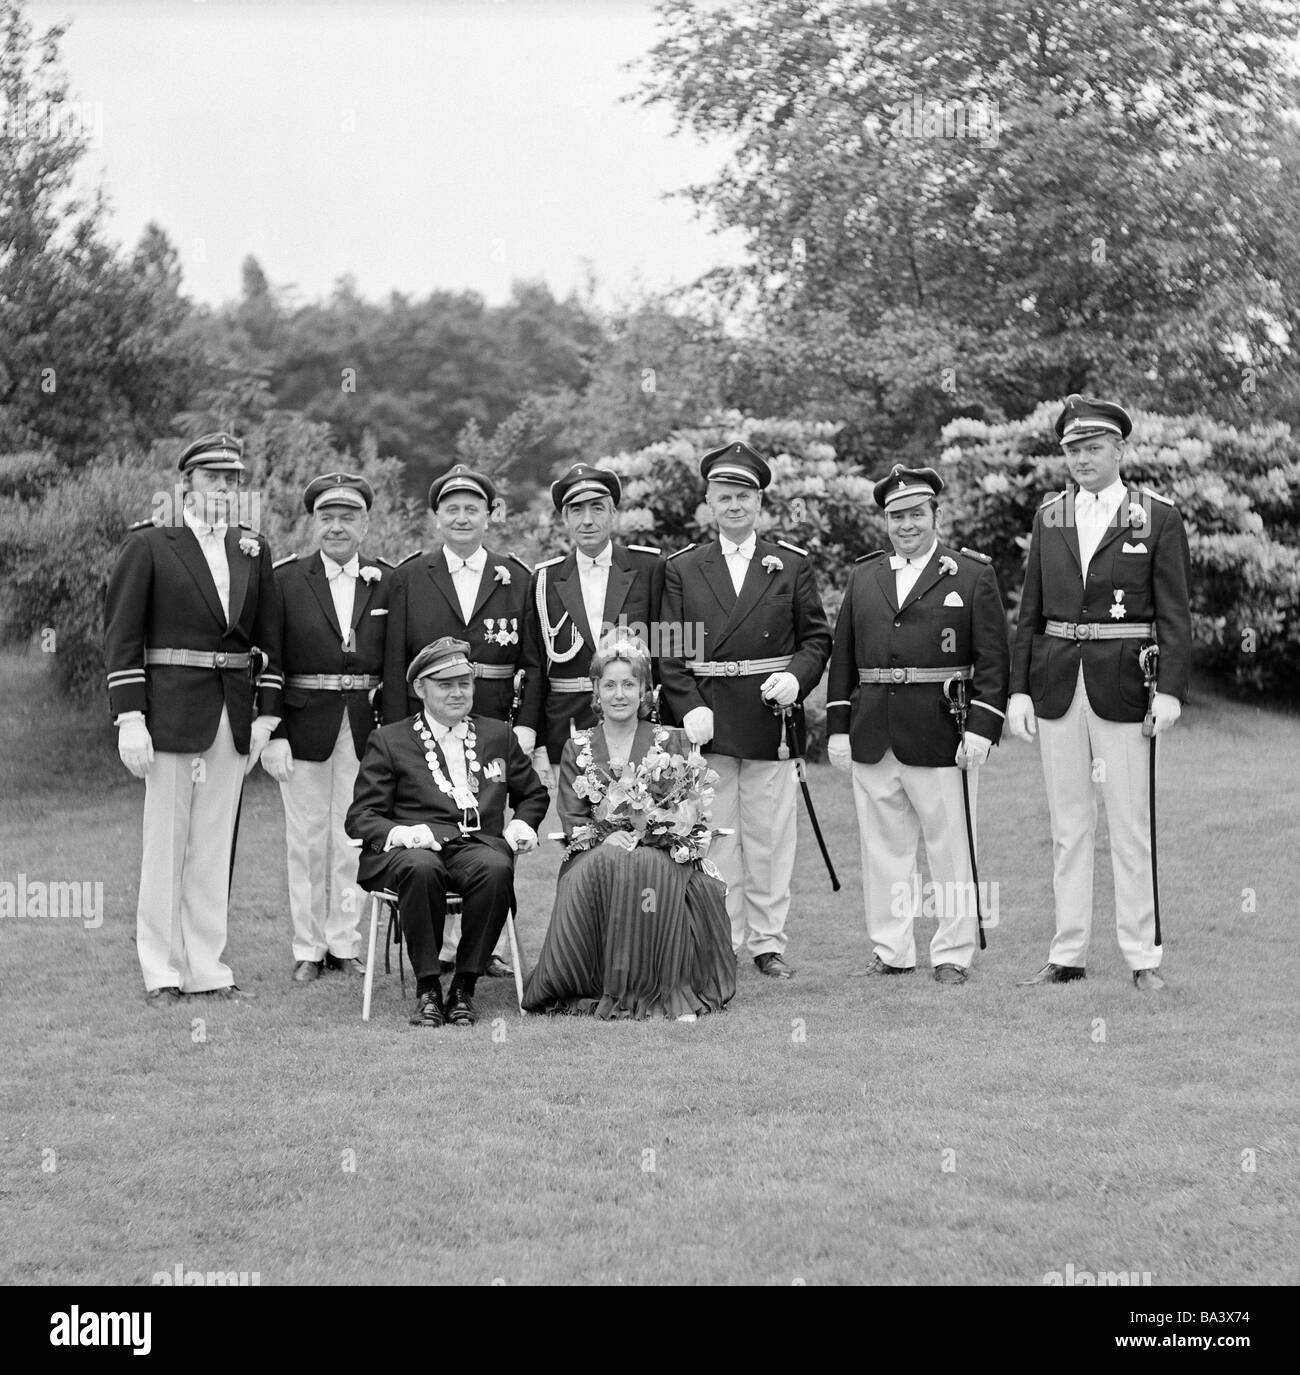 Seventies, black and white photo, people, shooting match, posing members of a shooting association, shooting uniform - Stock Image